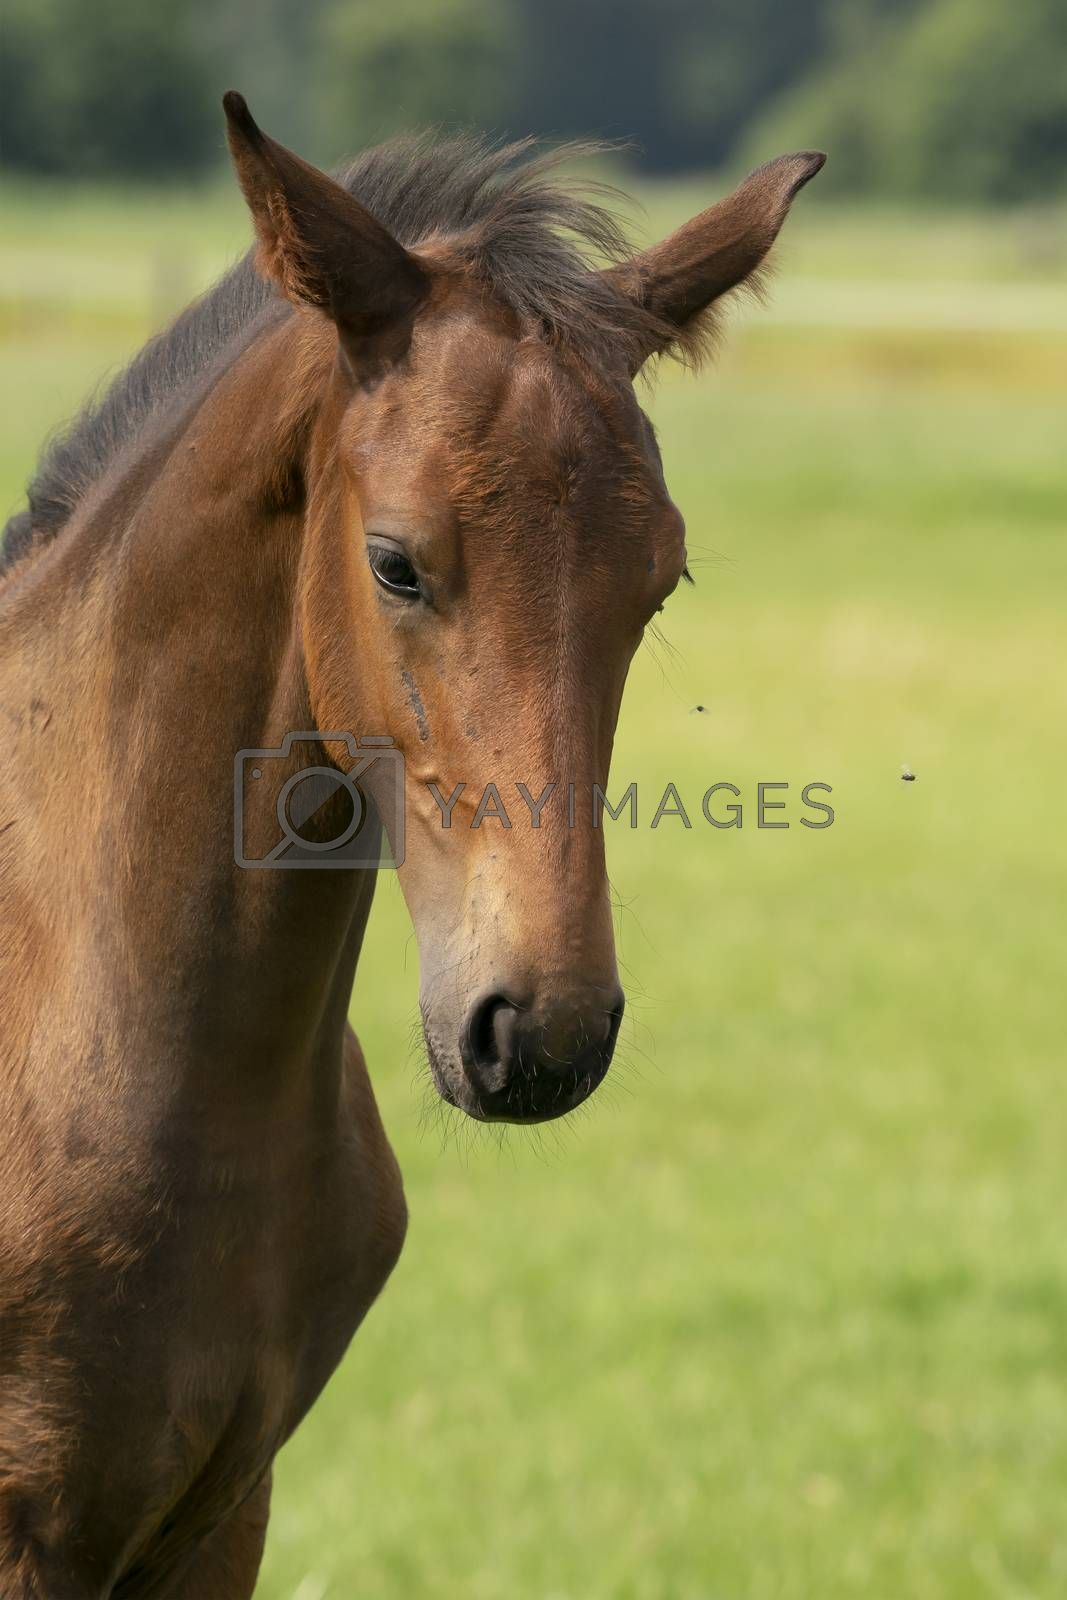 Attentive brown foal with head and mane in close-up.